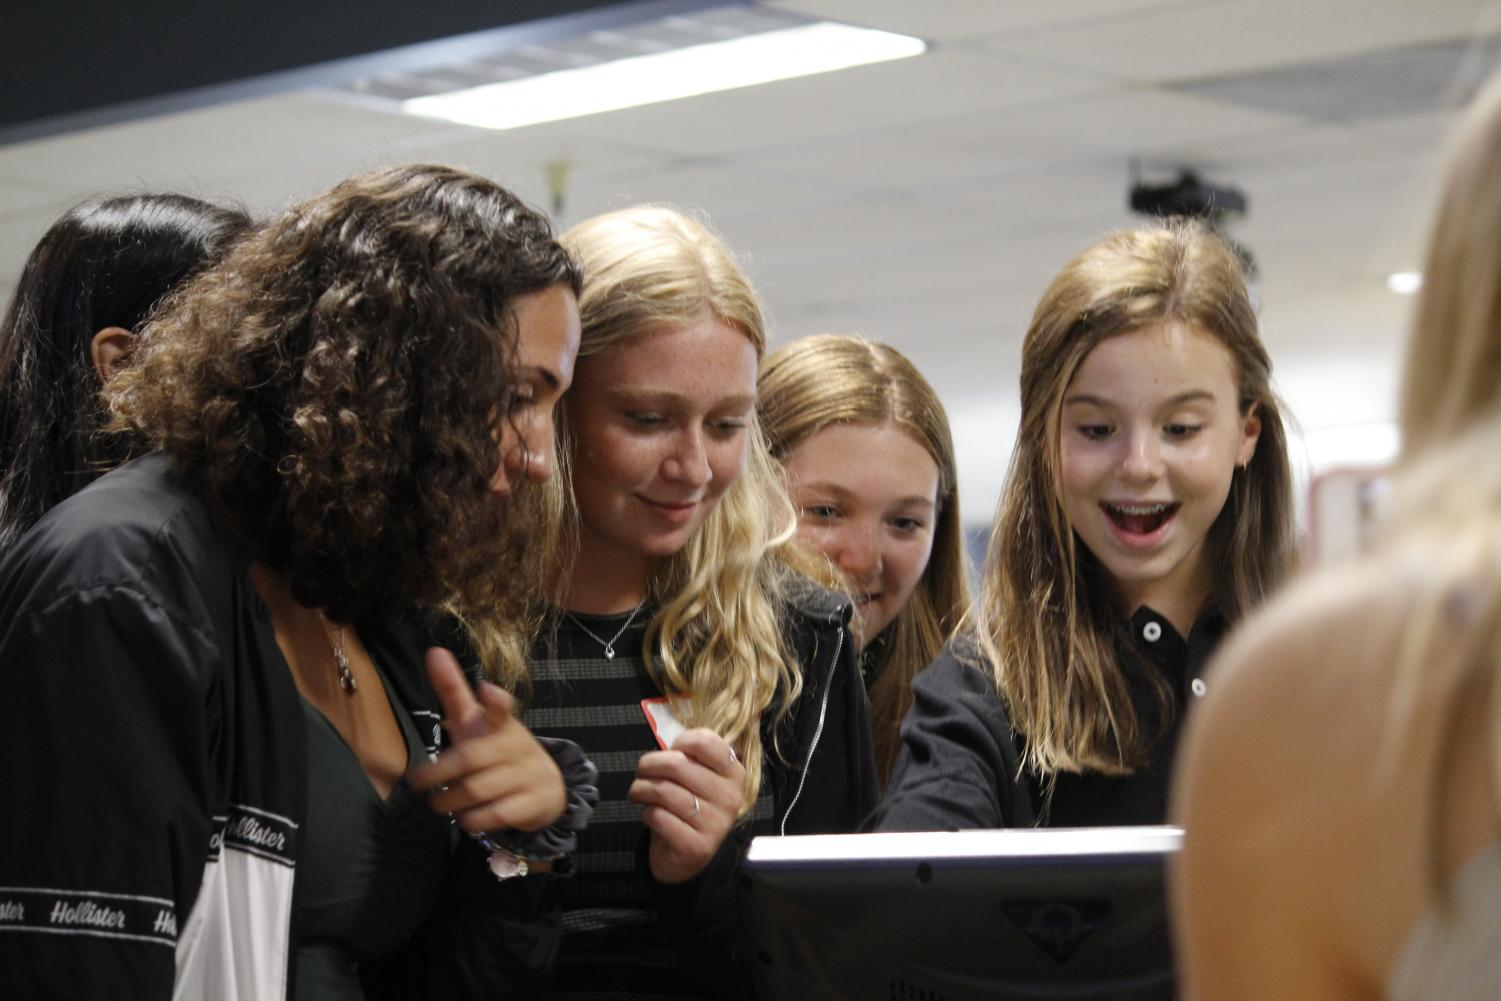 Freshmen Noor El-Qadah, Annika Hansen, Ella Noblin and Amaliya Sypult enter their names into the electronic scoreboard at Presidio Bowling Center on Aug. 16. Convent & Stuart Hall freshmen participated in arcade games, ate pizza and bowled.